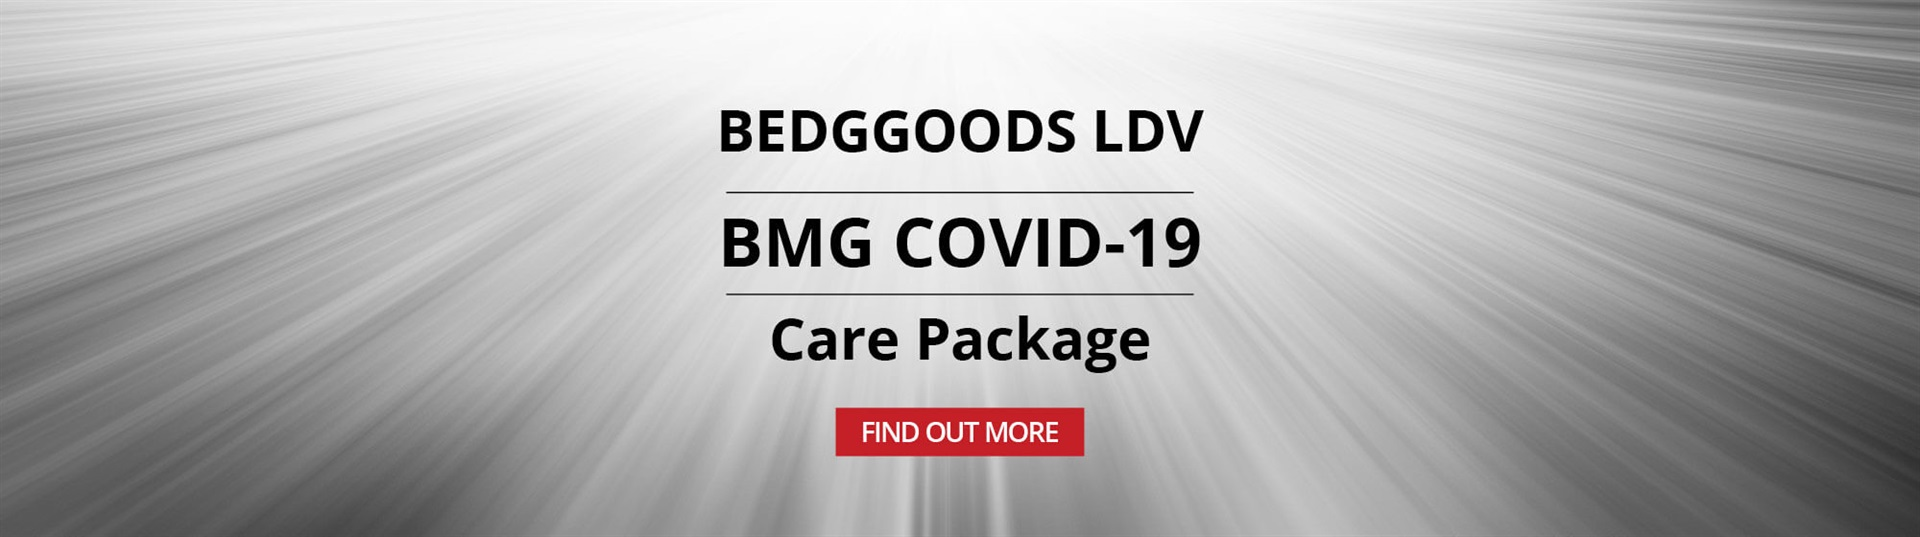 BMG COVID 19 Care Package